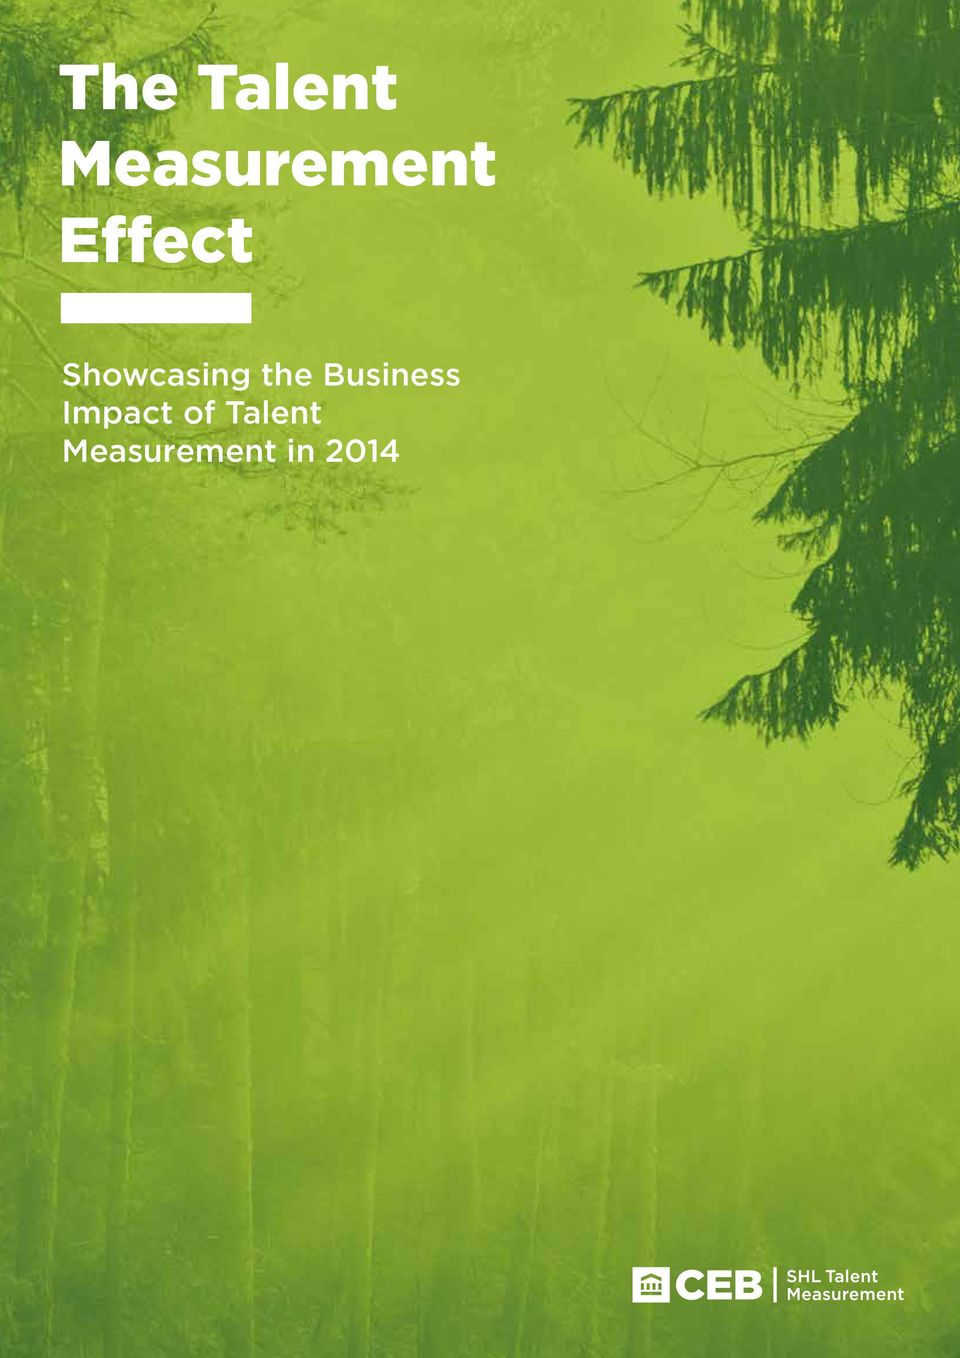 Business Impact of